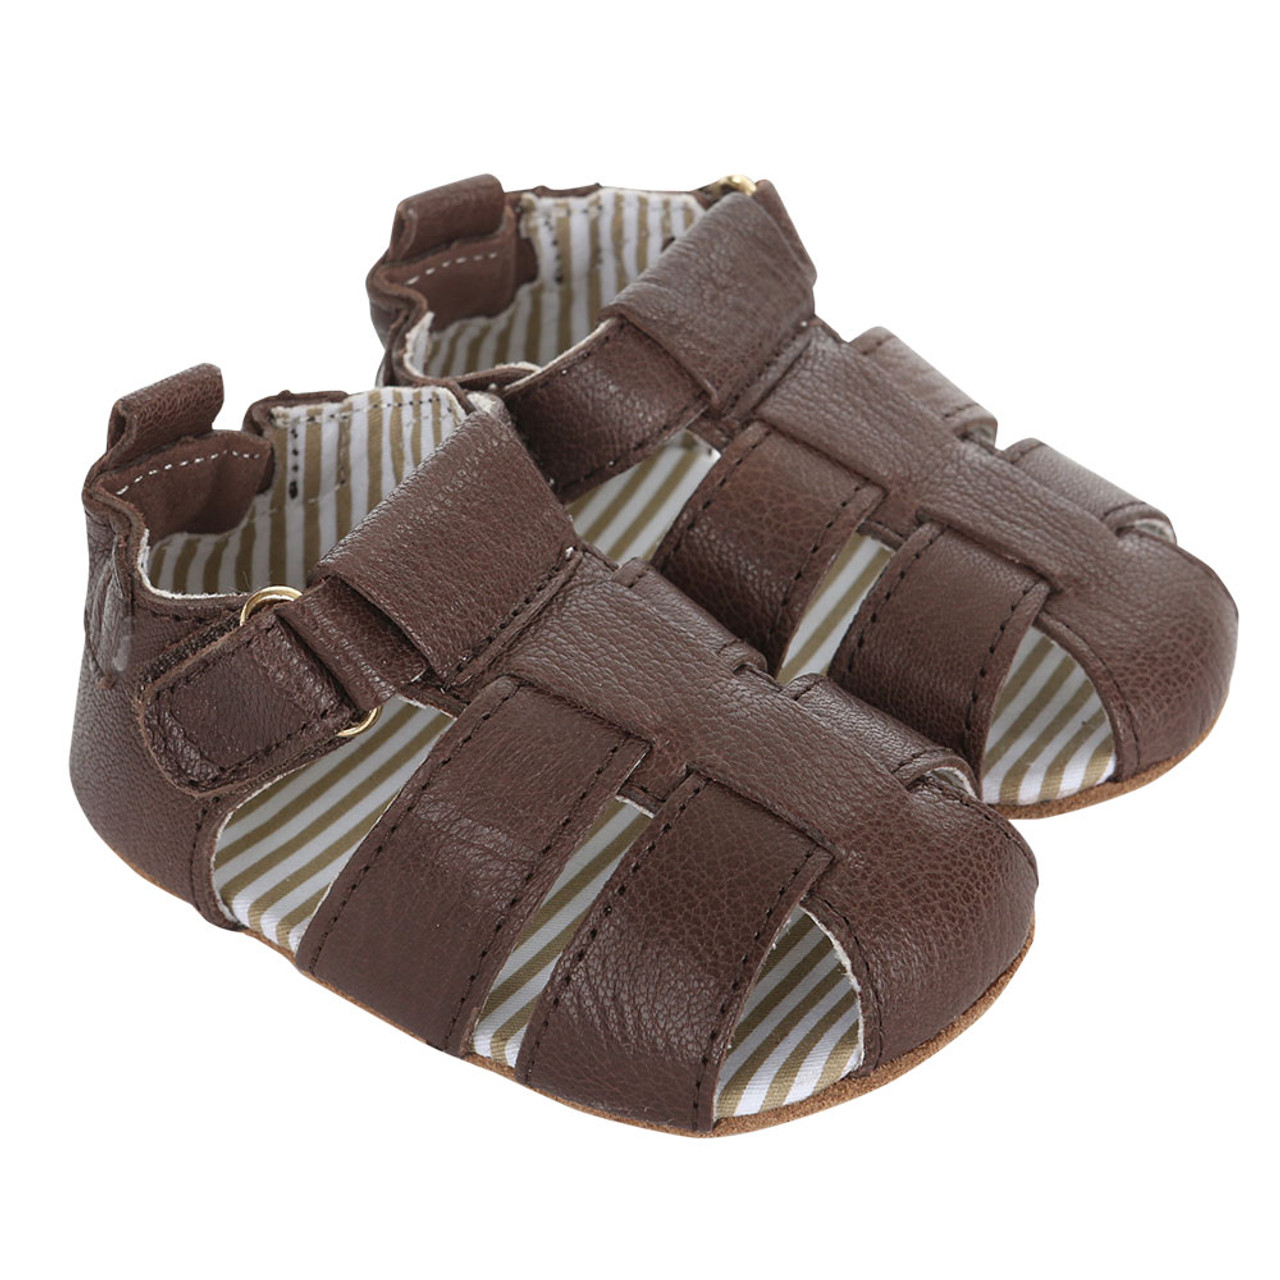 a7df76e93 Brown leather baby sandals with soft soles and adjustable strap.